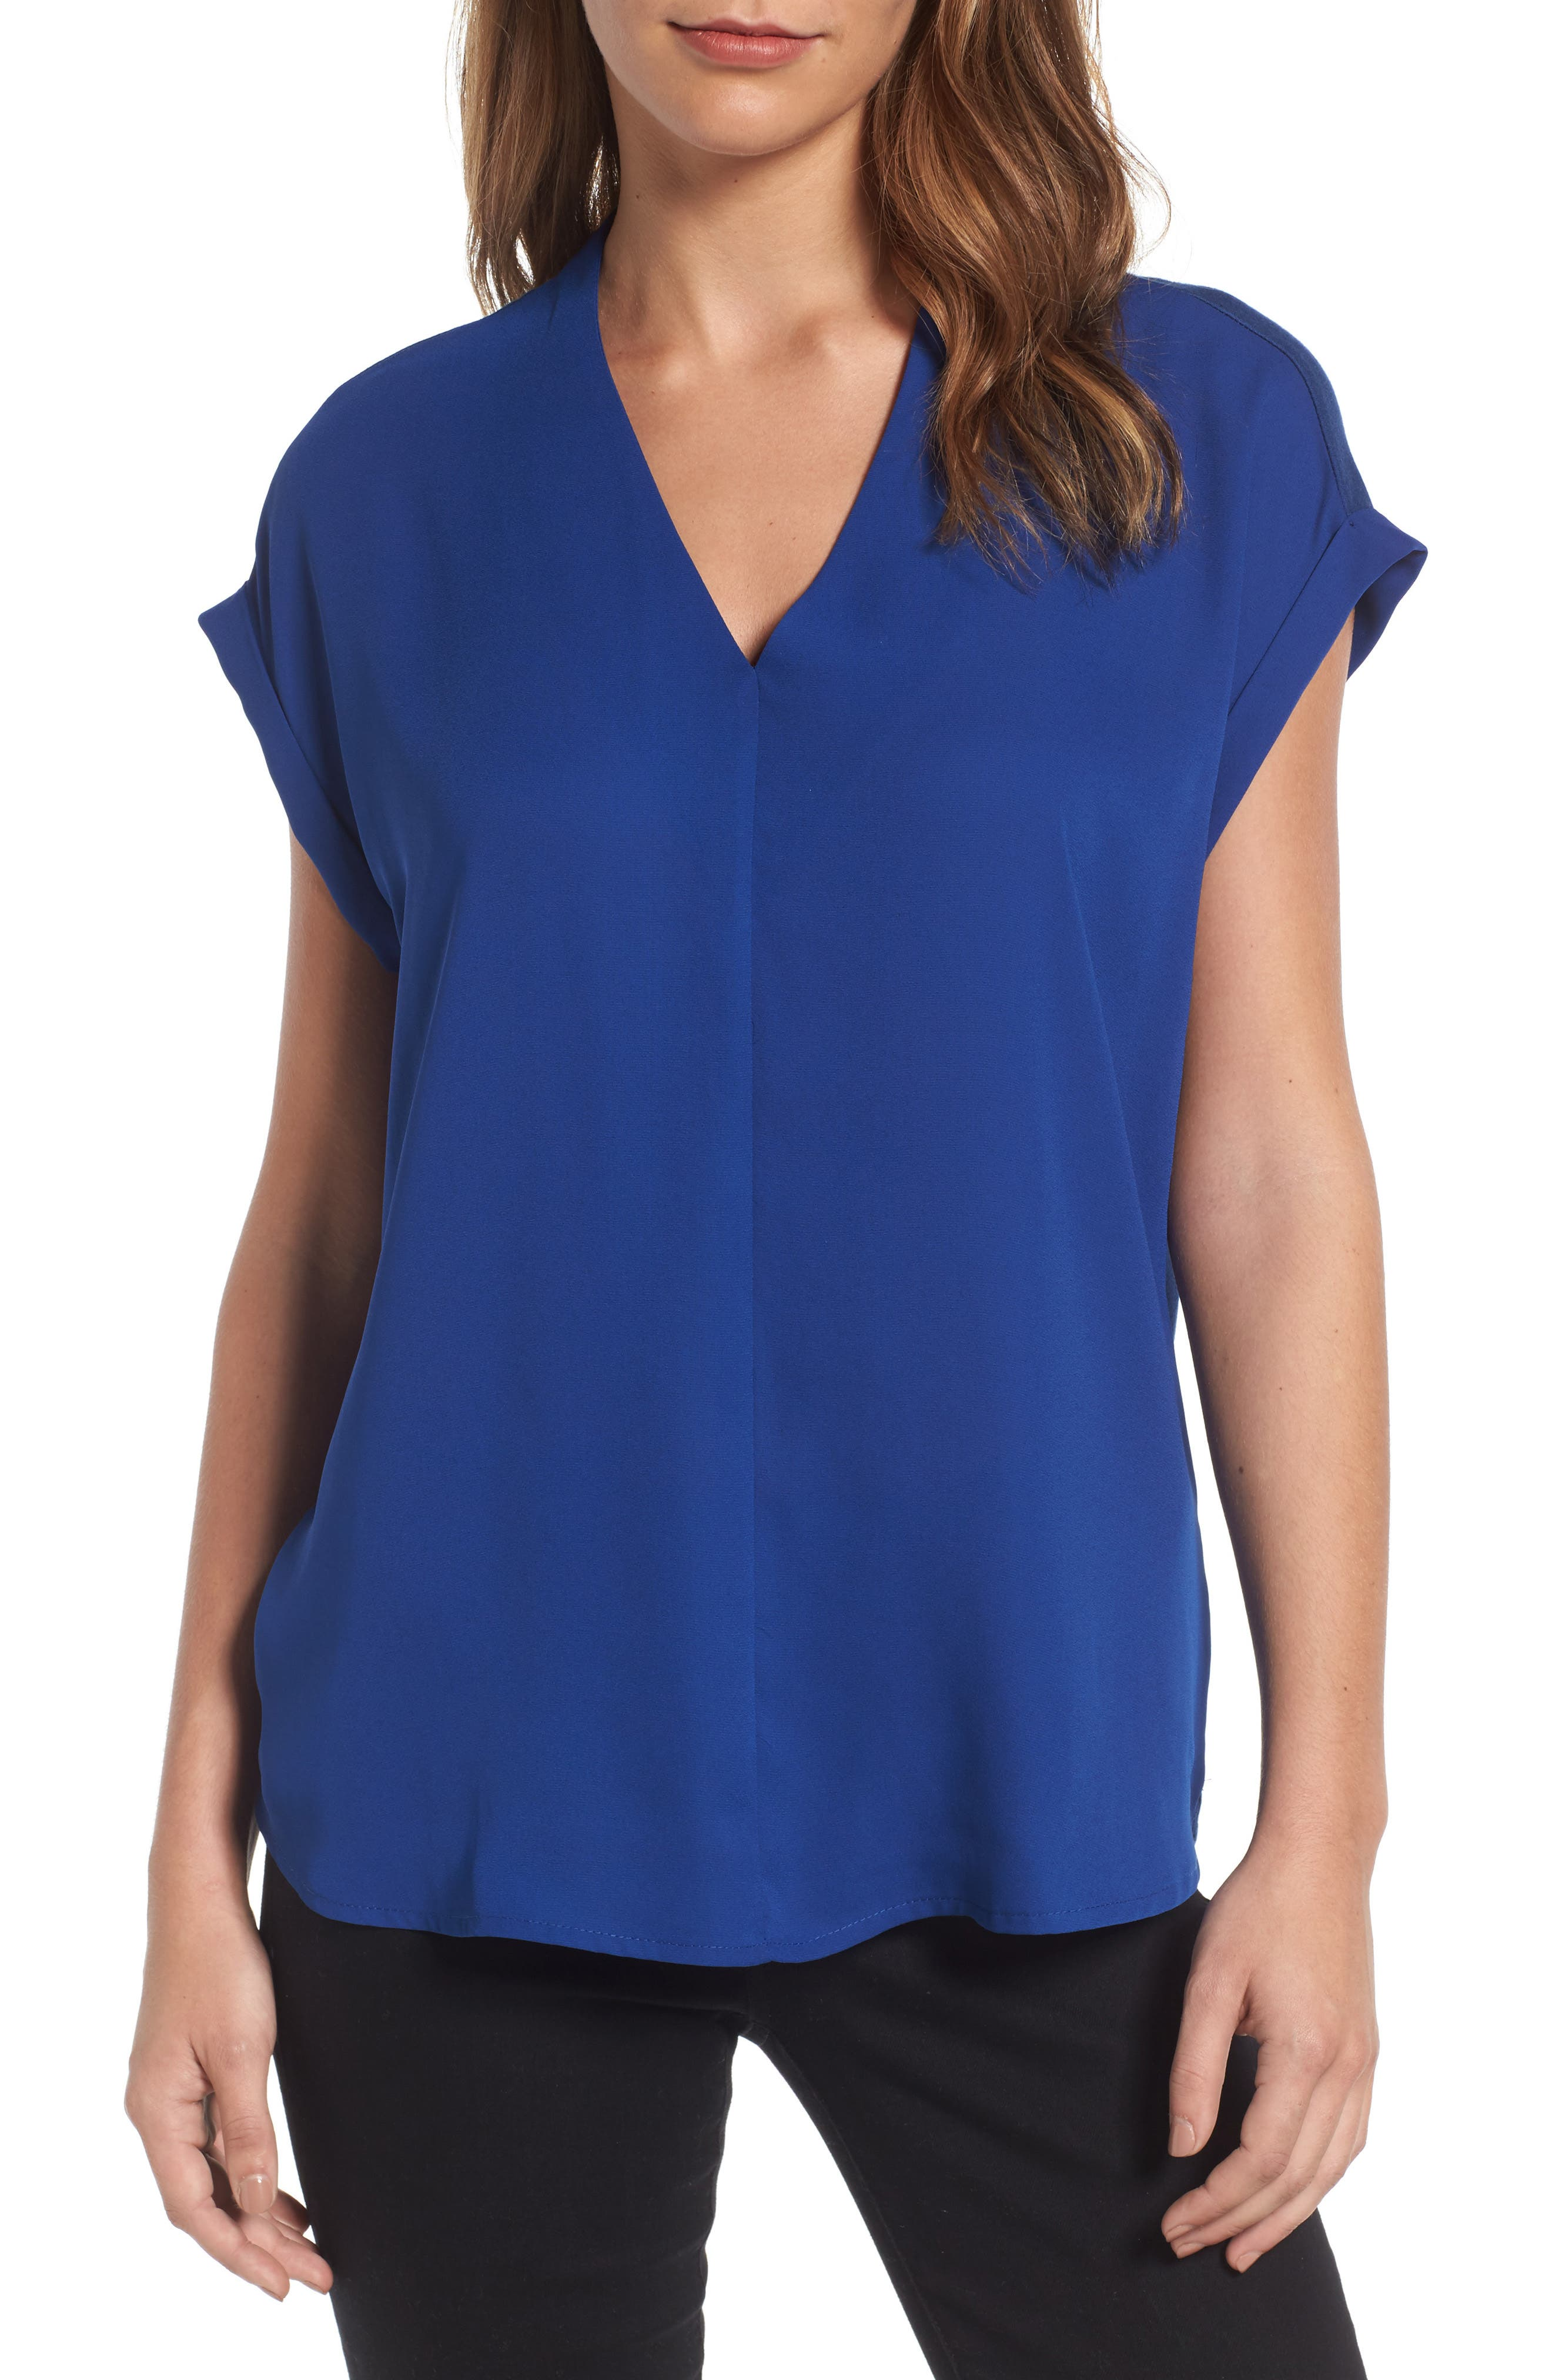 Alternate Image 1 Selected - Pleione High/Low V-Neck Mixed Media Top (Regular & Petite)